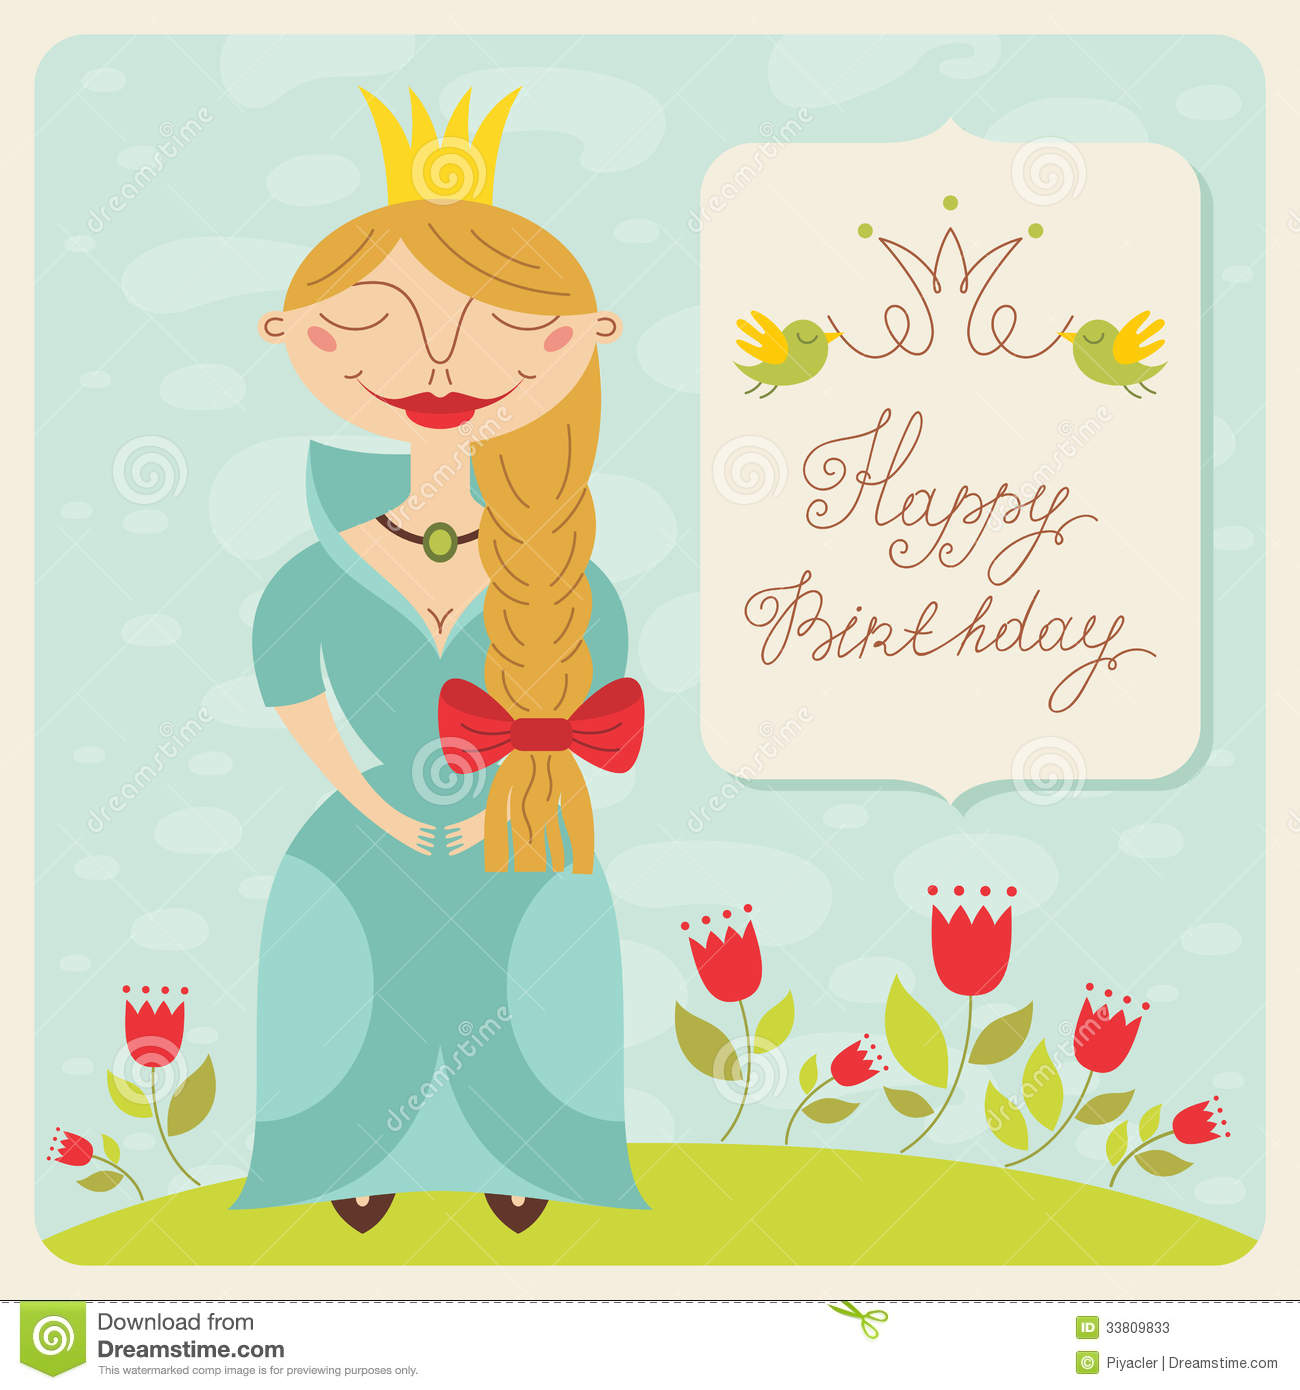 Happy Birthday Princess Card Stock Photos - Image: 33809833